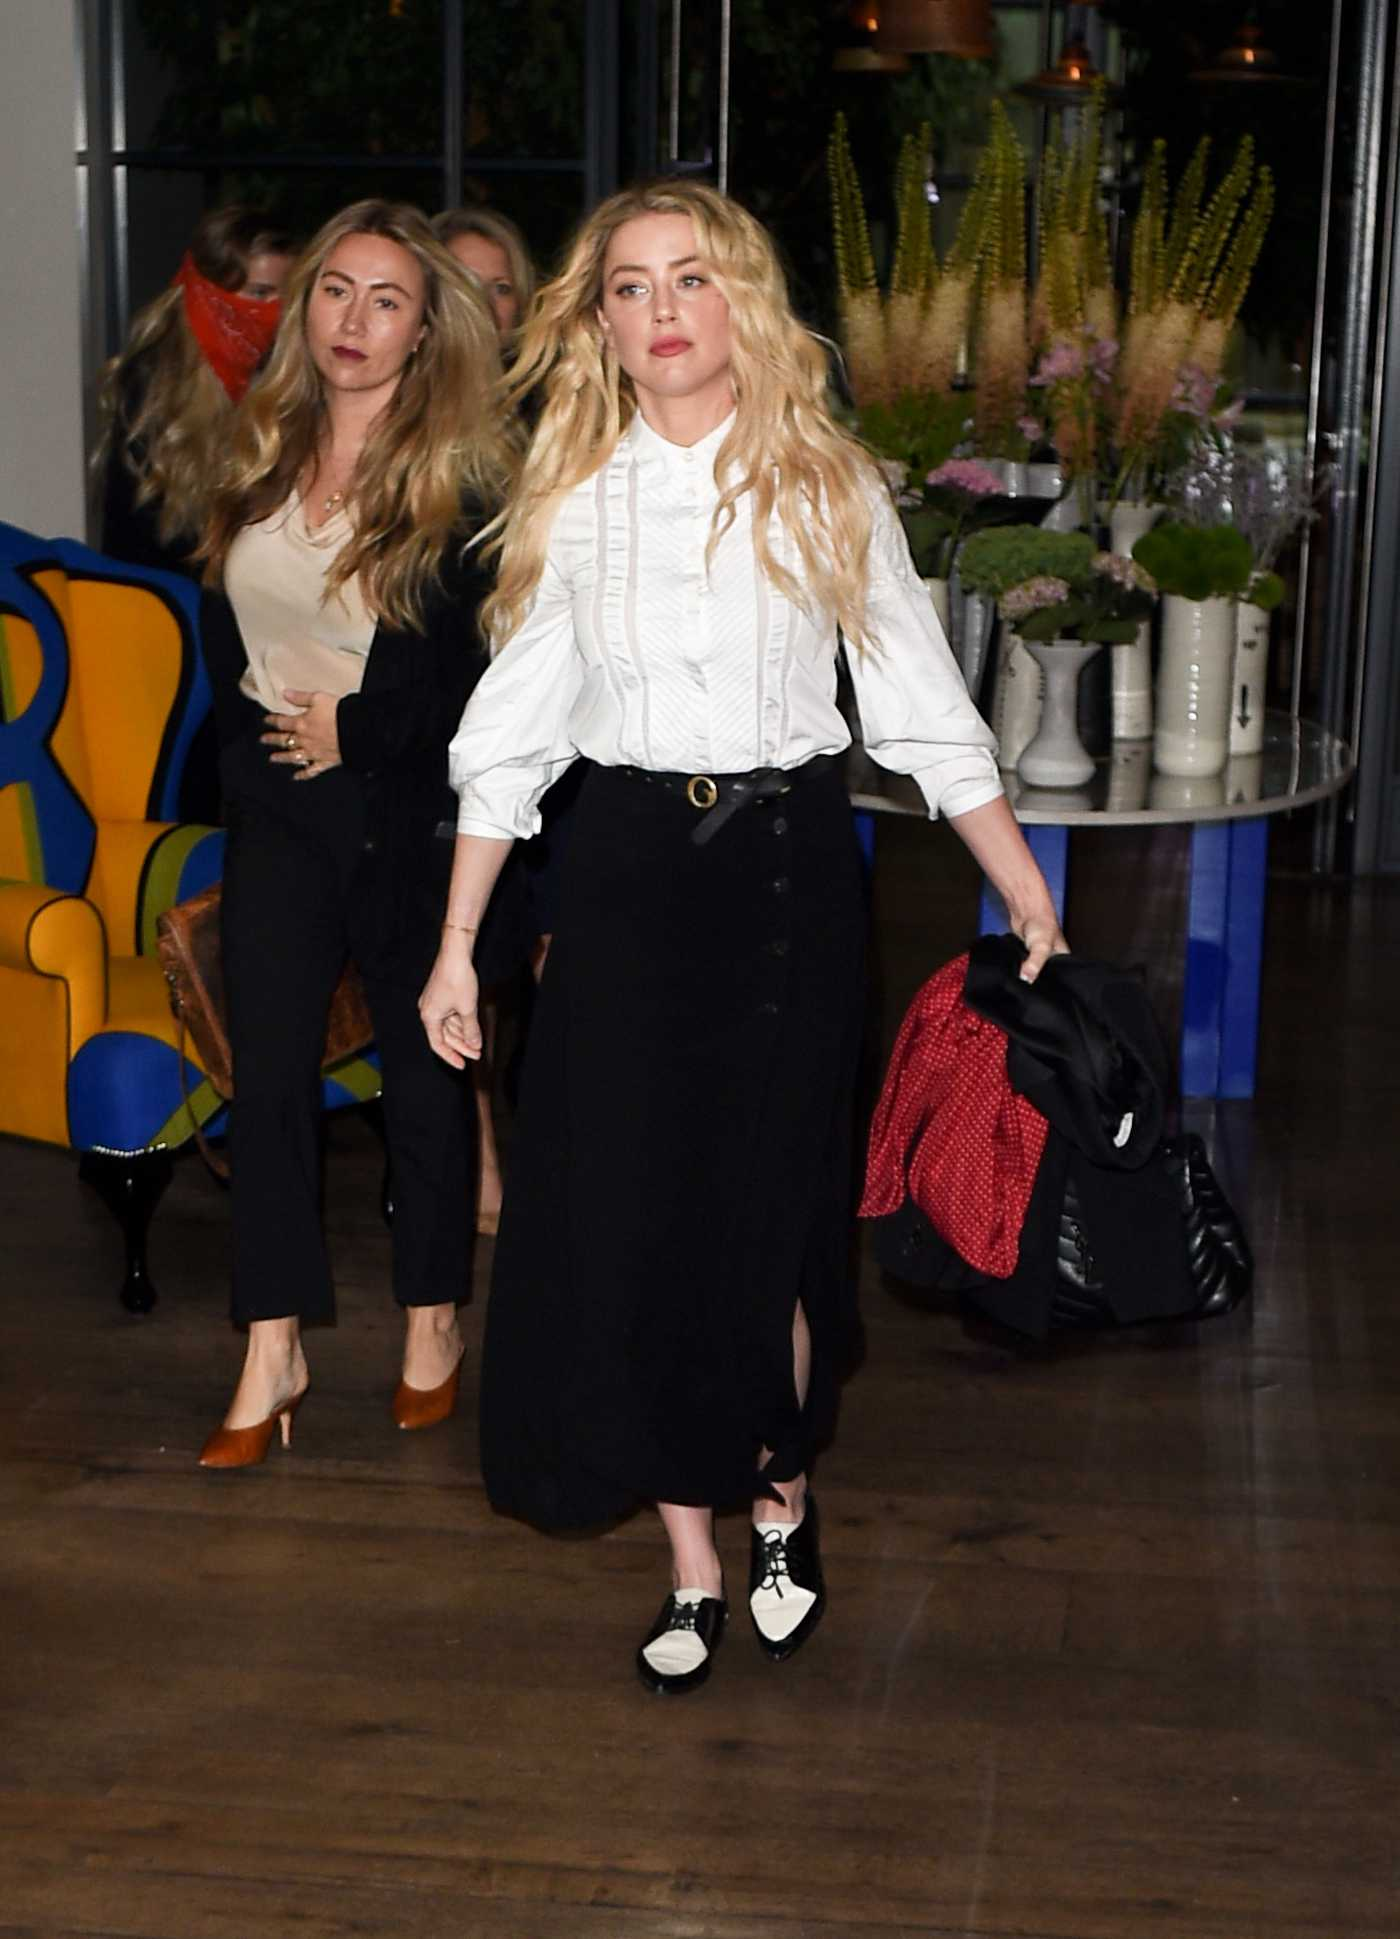 Amber Heard in a White Blouse Leaves the Ham Yard Hotel in London 07/14/2020